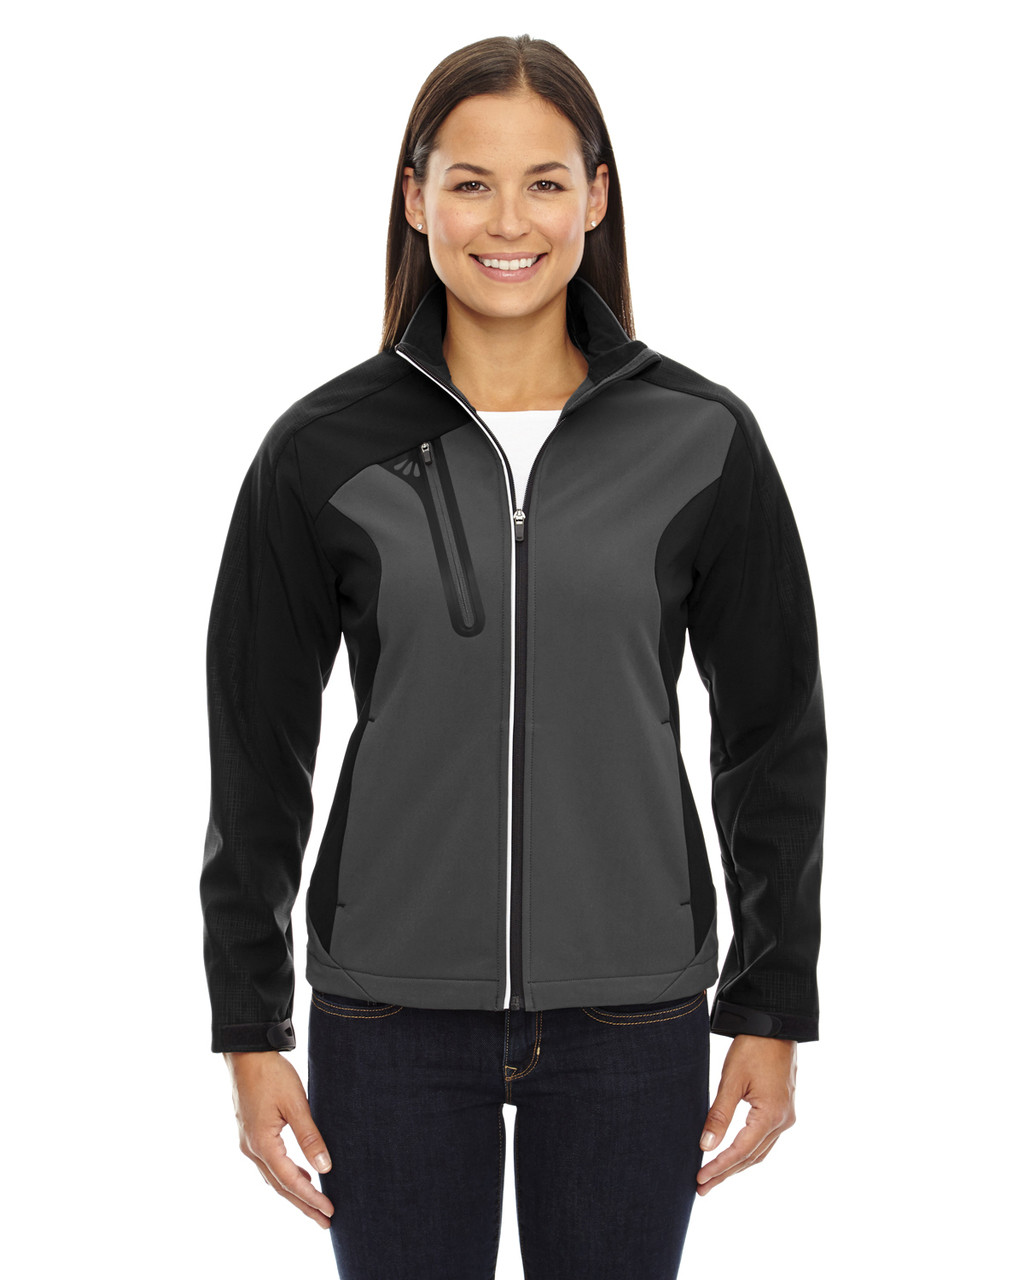 Black Silk - 78176 North End Terrain Colourblock Soft Shell Jacket with Embossed Print | Blankclothing.ca